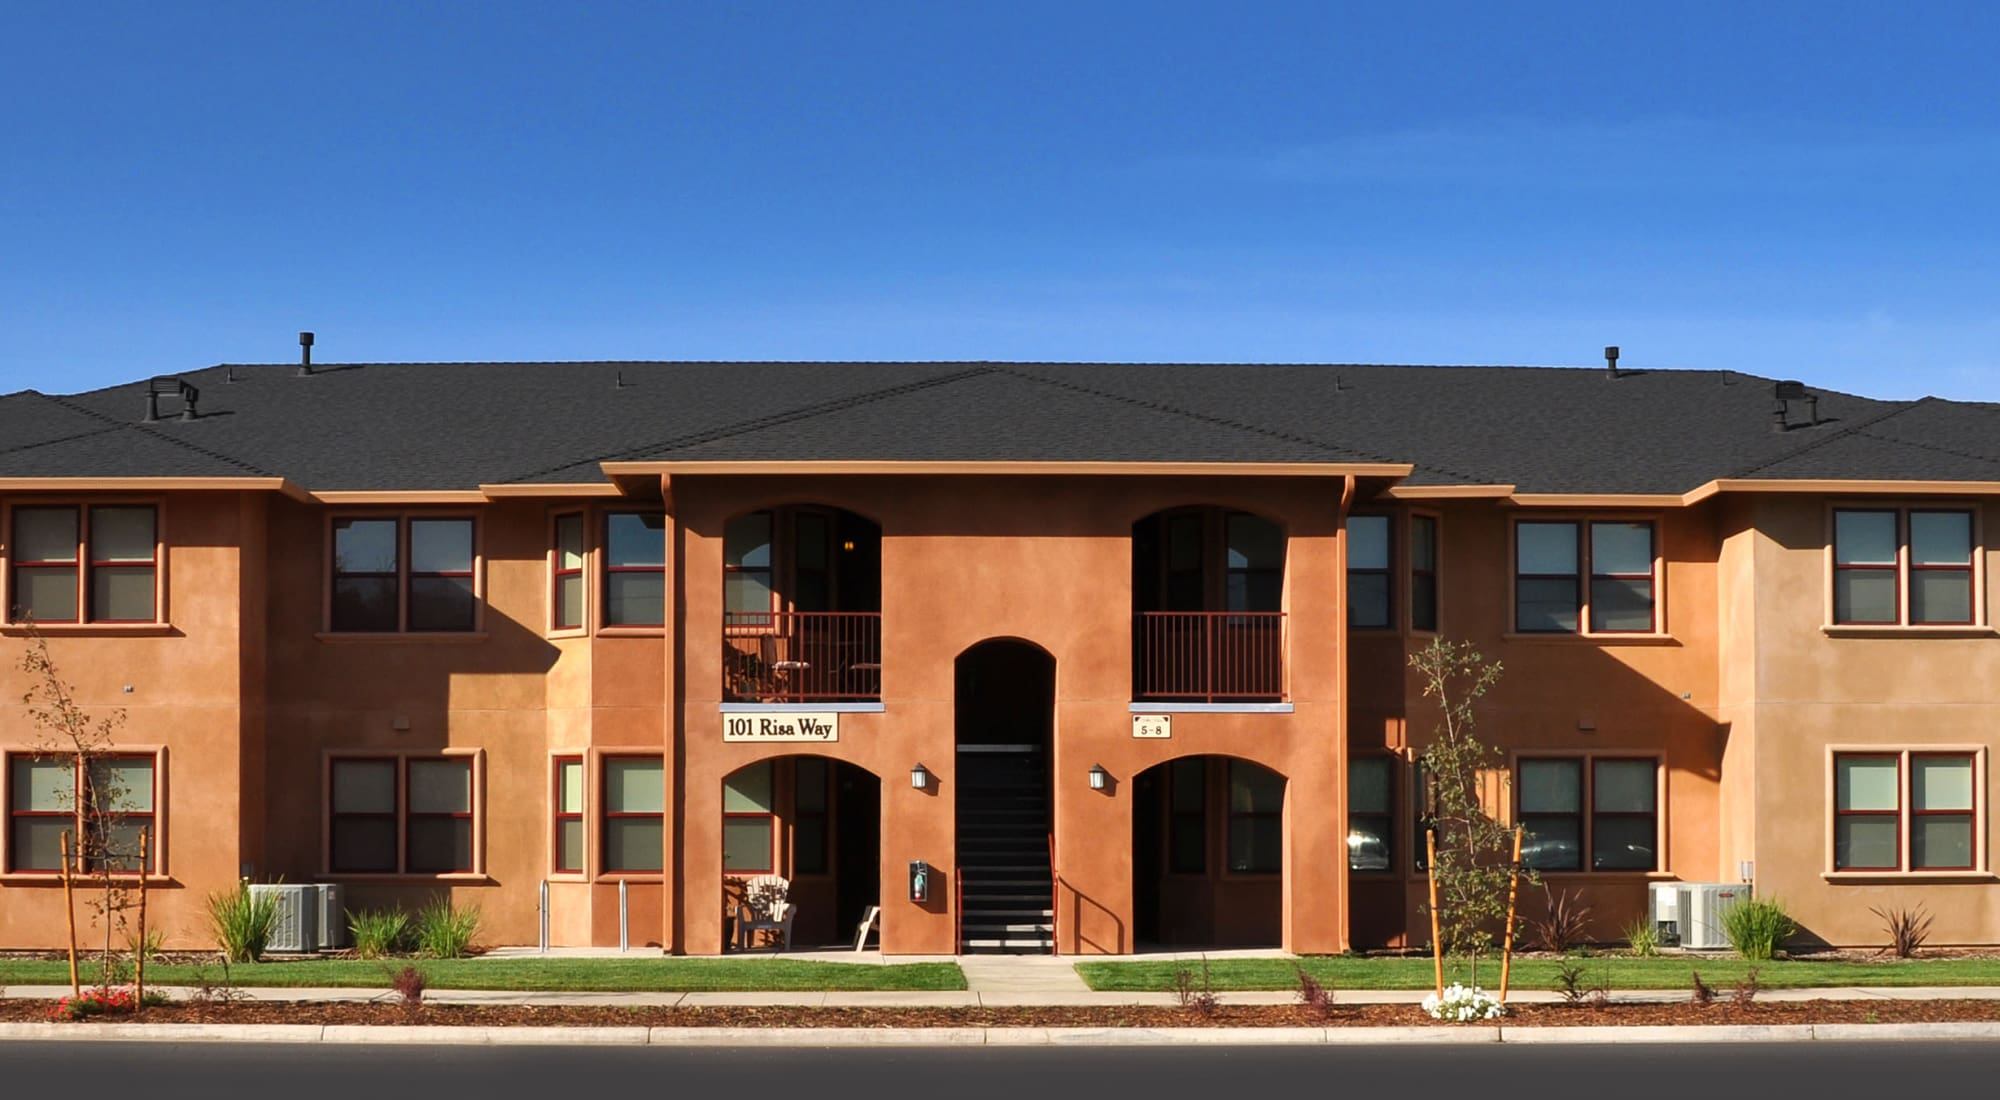 Floor plans at Villa Risa Apartments in Chico, California